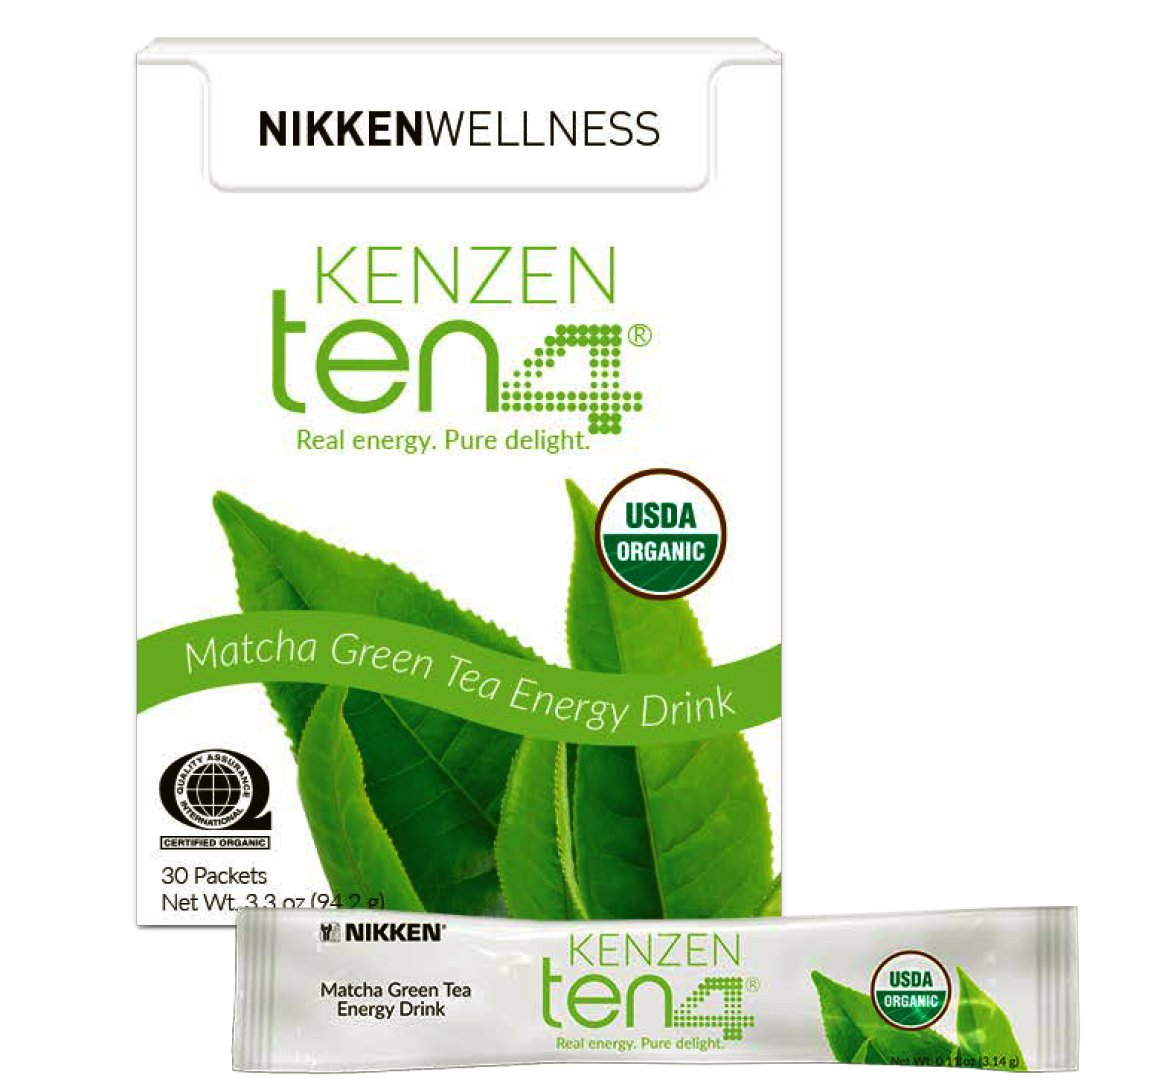 Nikken Wellness Kenzen Ten4 Matcha Green Tea Powder - Pure Green Tea Fat Burner and Natural Energy Powder Drink Mix - Matcha Powder for Weight Loss - Organic Matcha Tea Lose Weight Fast 30 Sachets